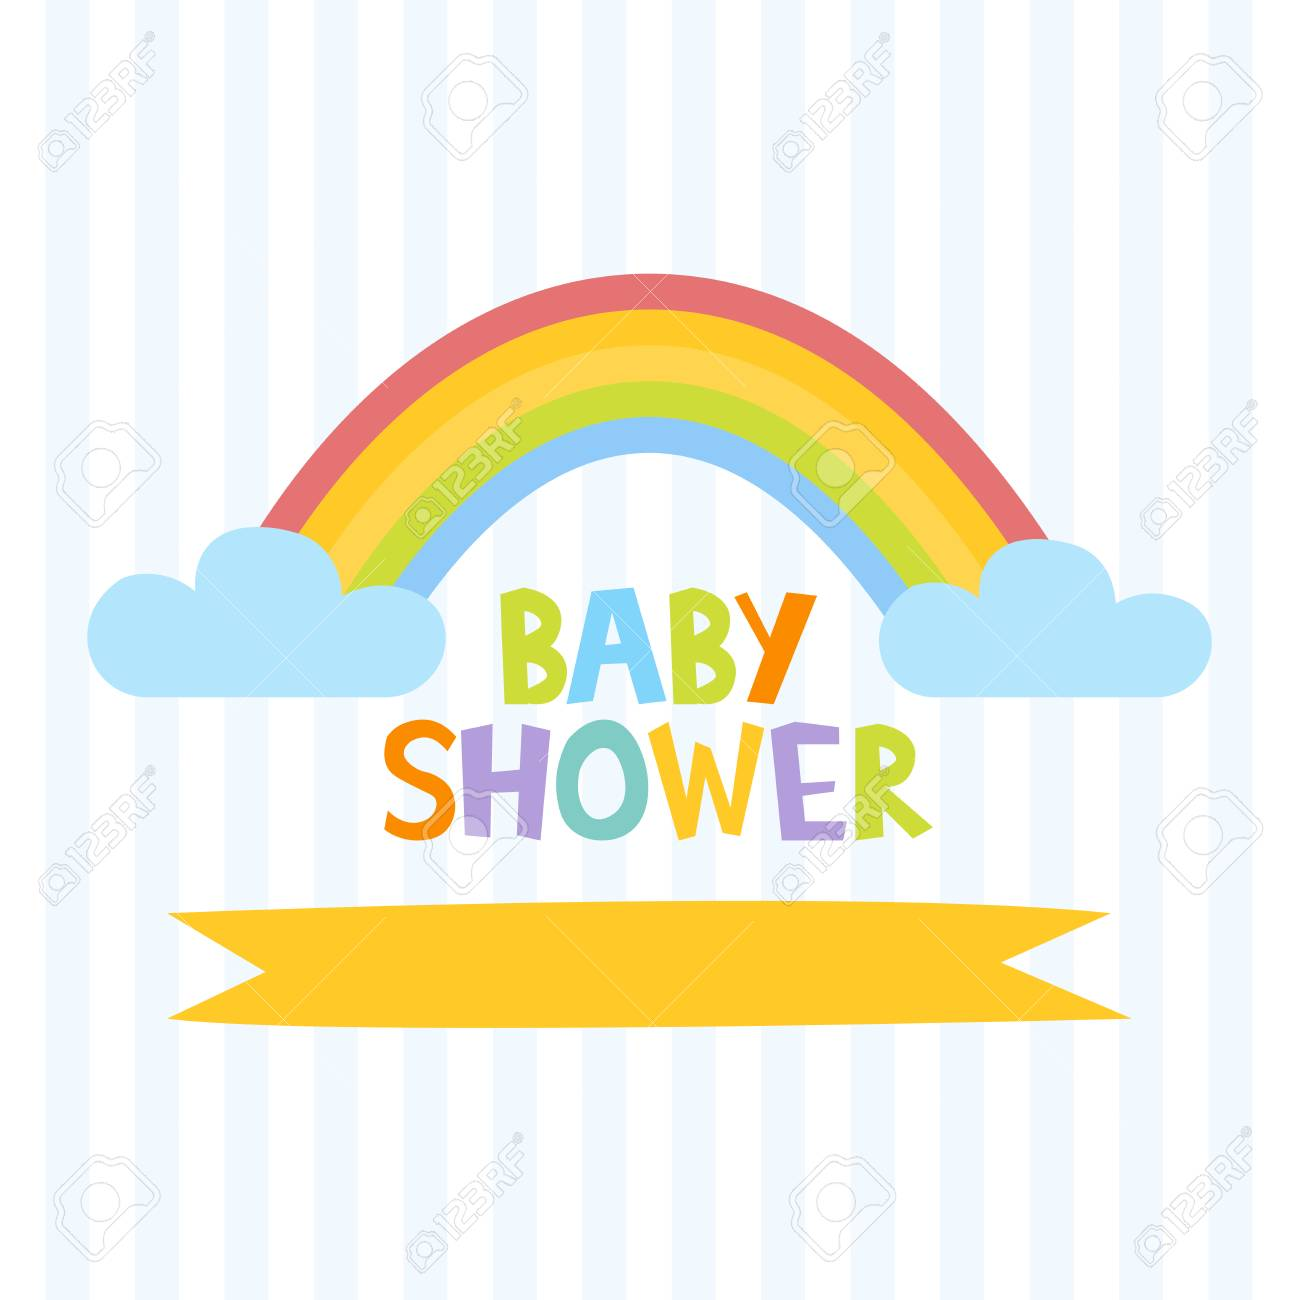 Cute Baby Shower Invitation Template With Letters And Rainbow ...